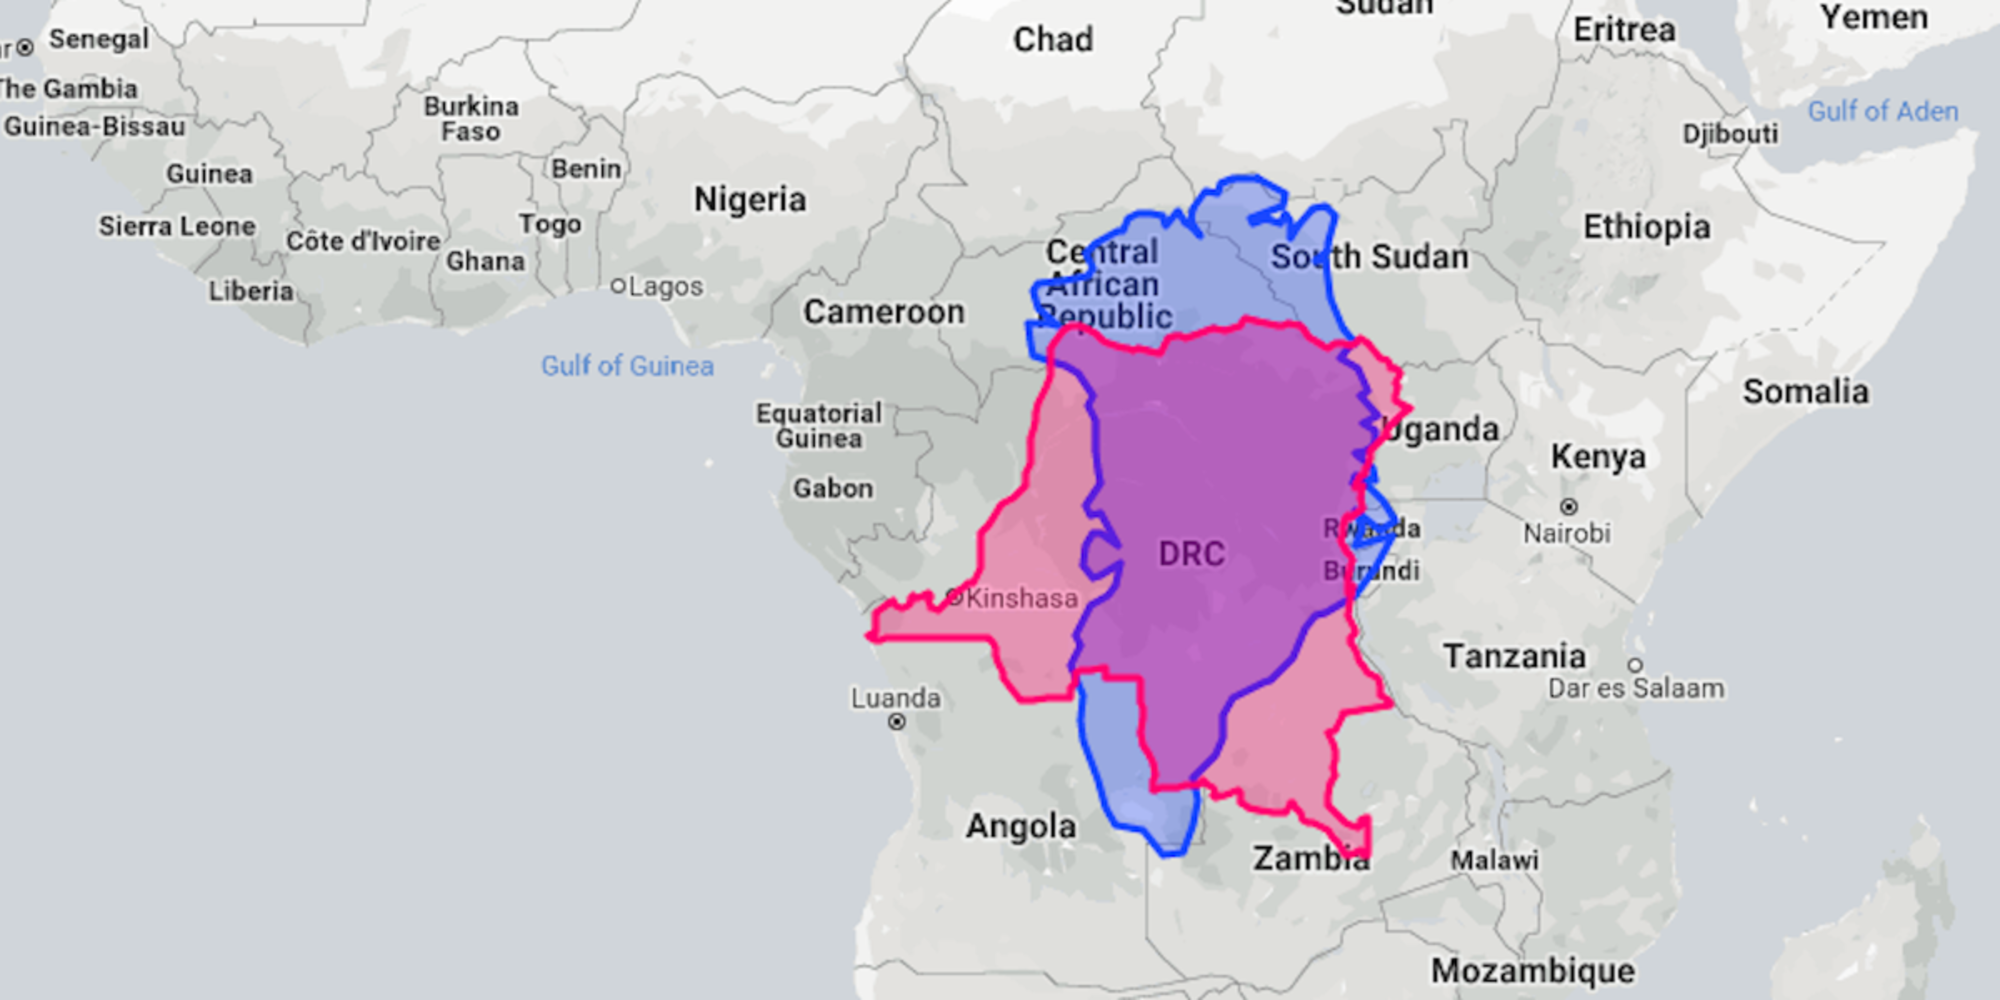 You can now drag and drop whole countries to compare their